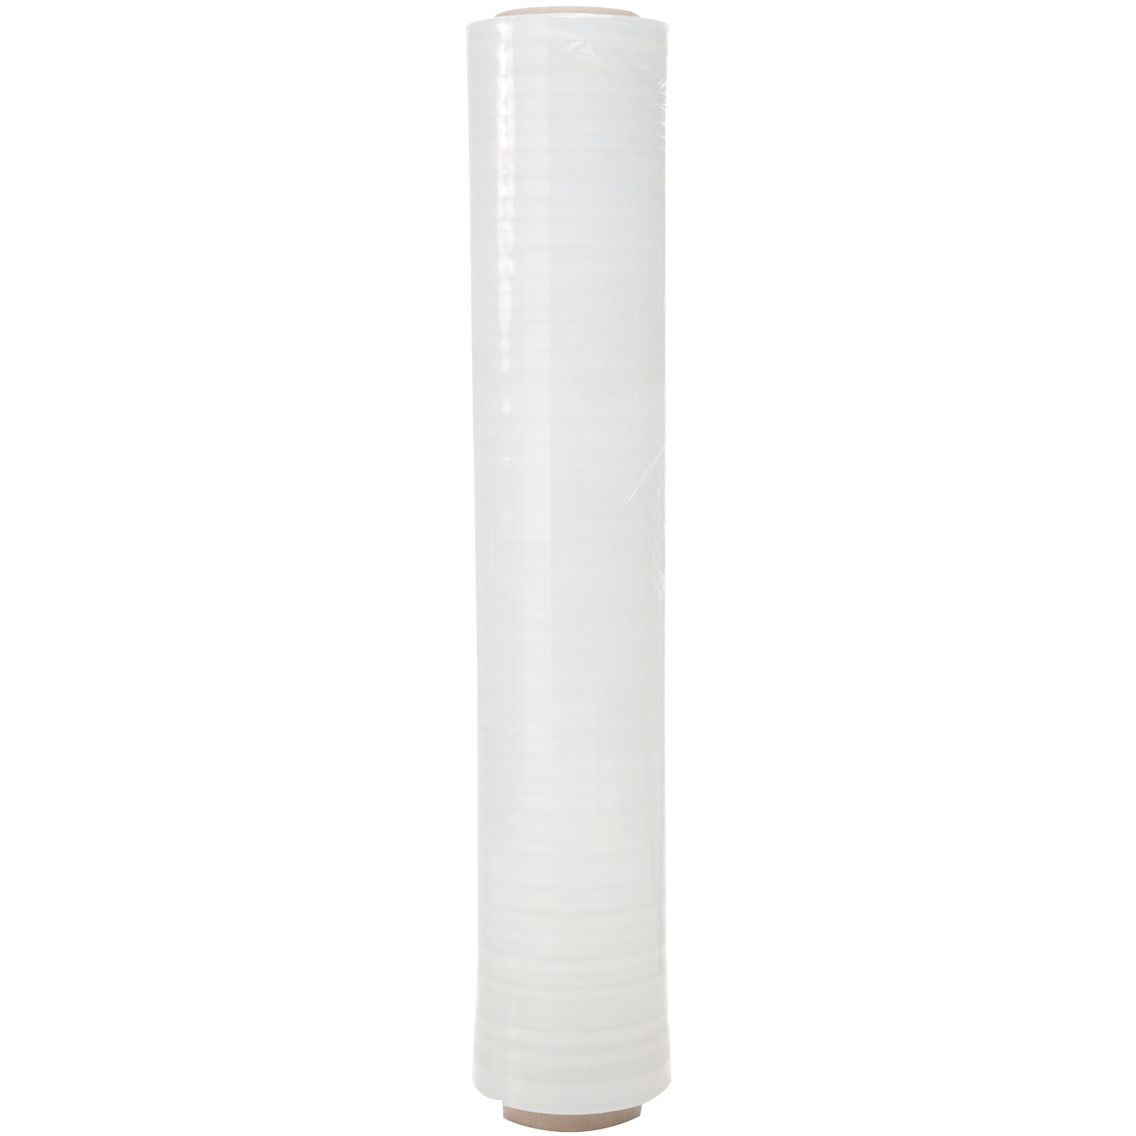 Hotpack Plastic Stretch Wrap Film 12-micron - 1.8kg (roll)